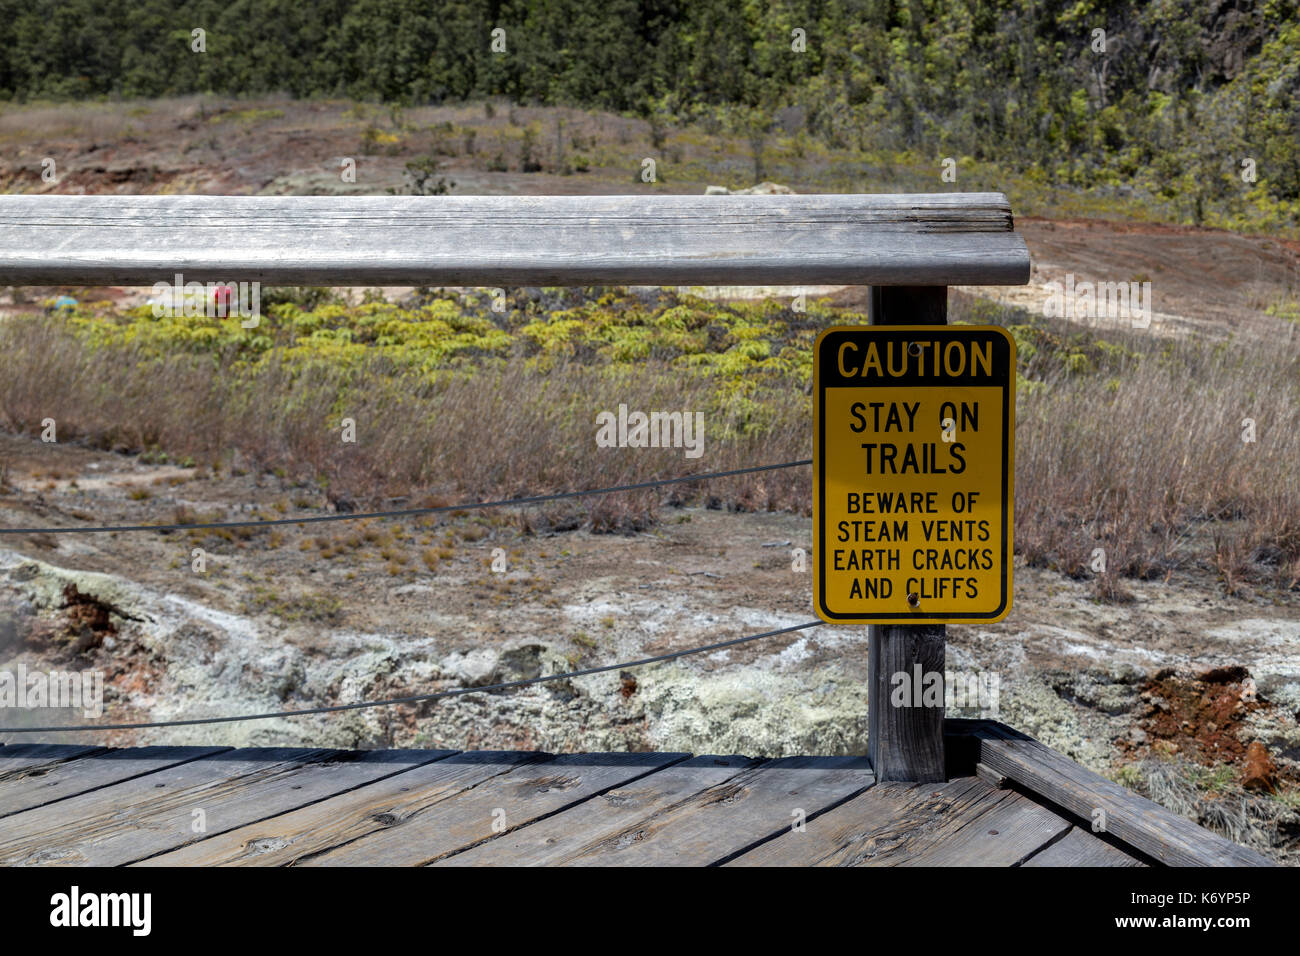 Warning sign about the danger one can encounter along the Sulphur Banks trail, nailed to an old wooden bench. located in the Volcanoes National Park. - Stock Image